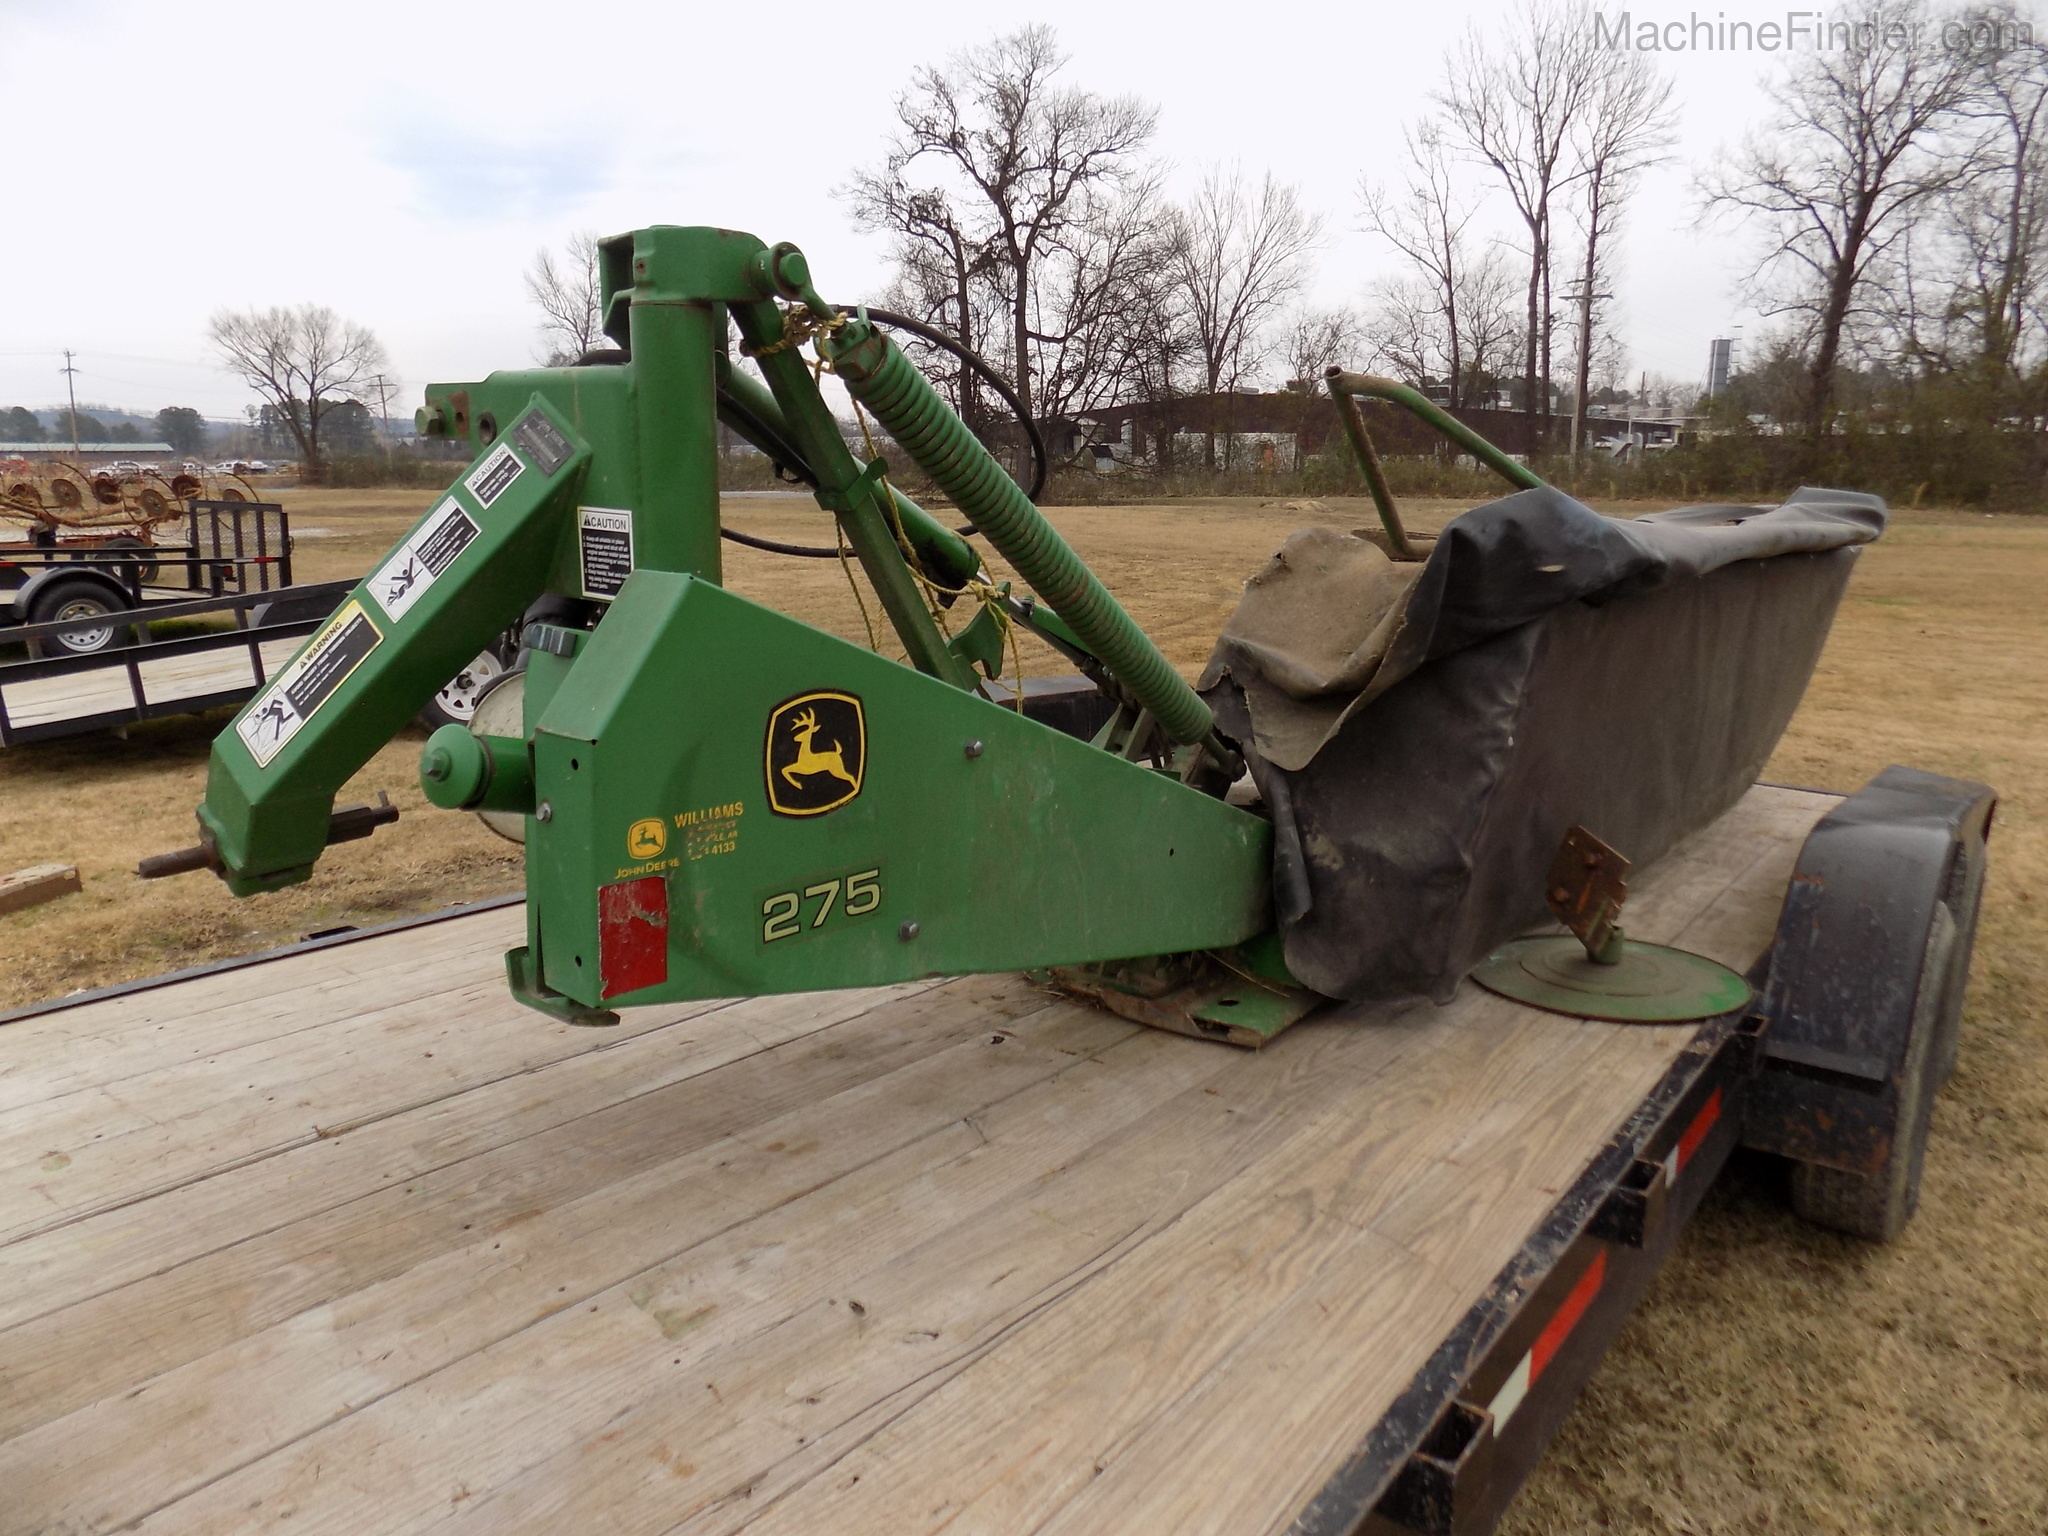 2008 John Deere 275 - Hay Mowers Mounted - John Deere MachineFinder